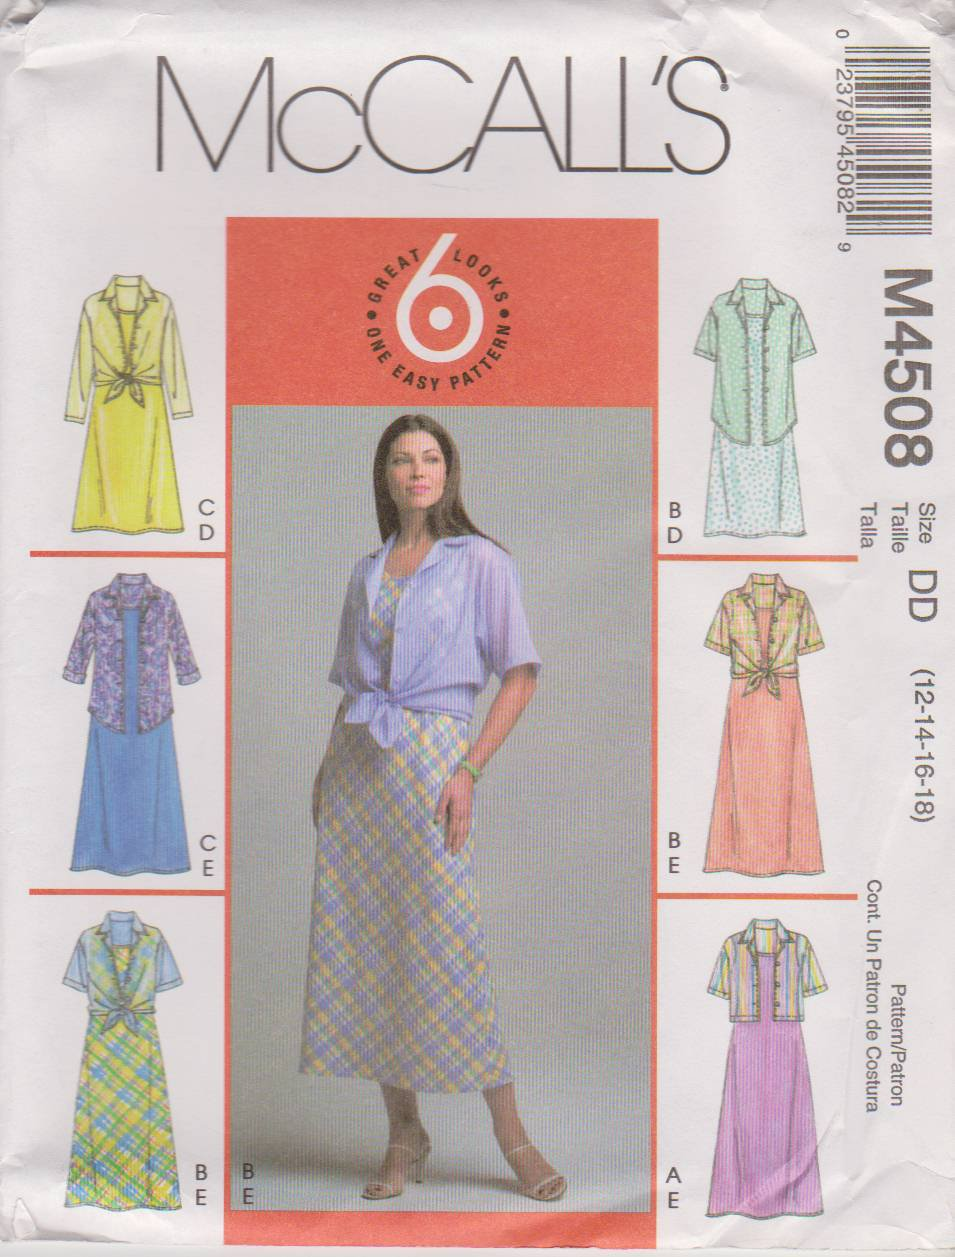 McCall�s Sewing Pattern 4508 M4508 Misses Size 12-18 Pullover Sleeveless Dress Button Front Shirt